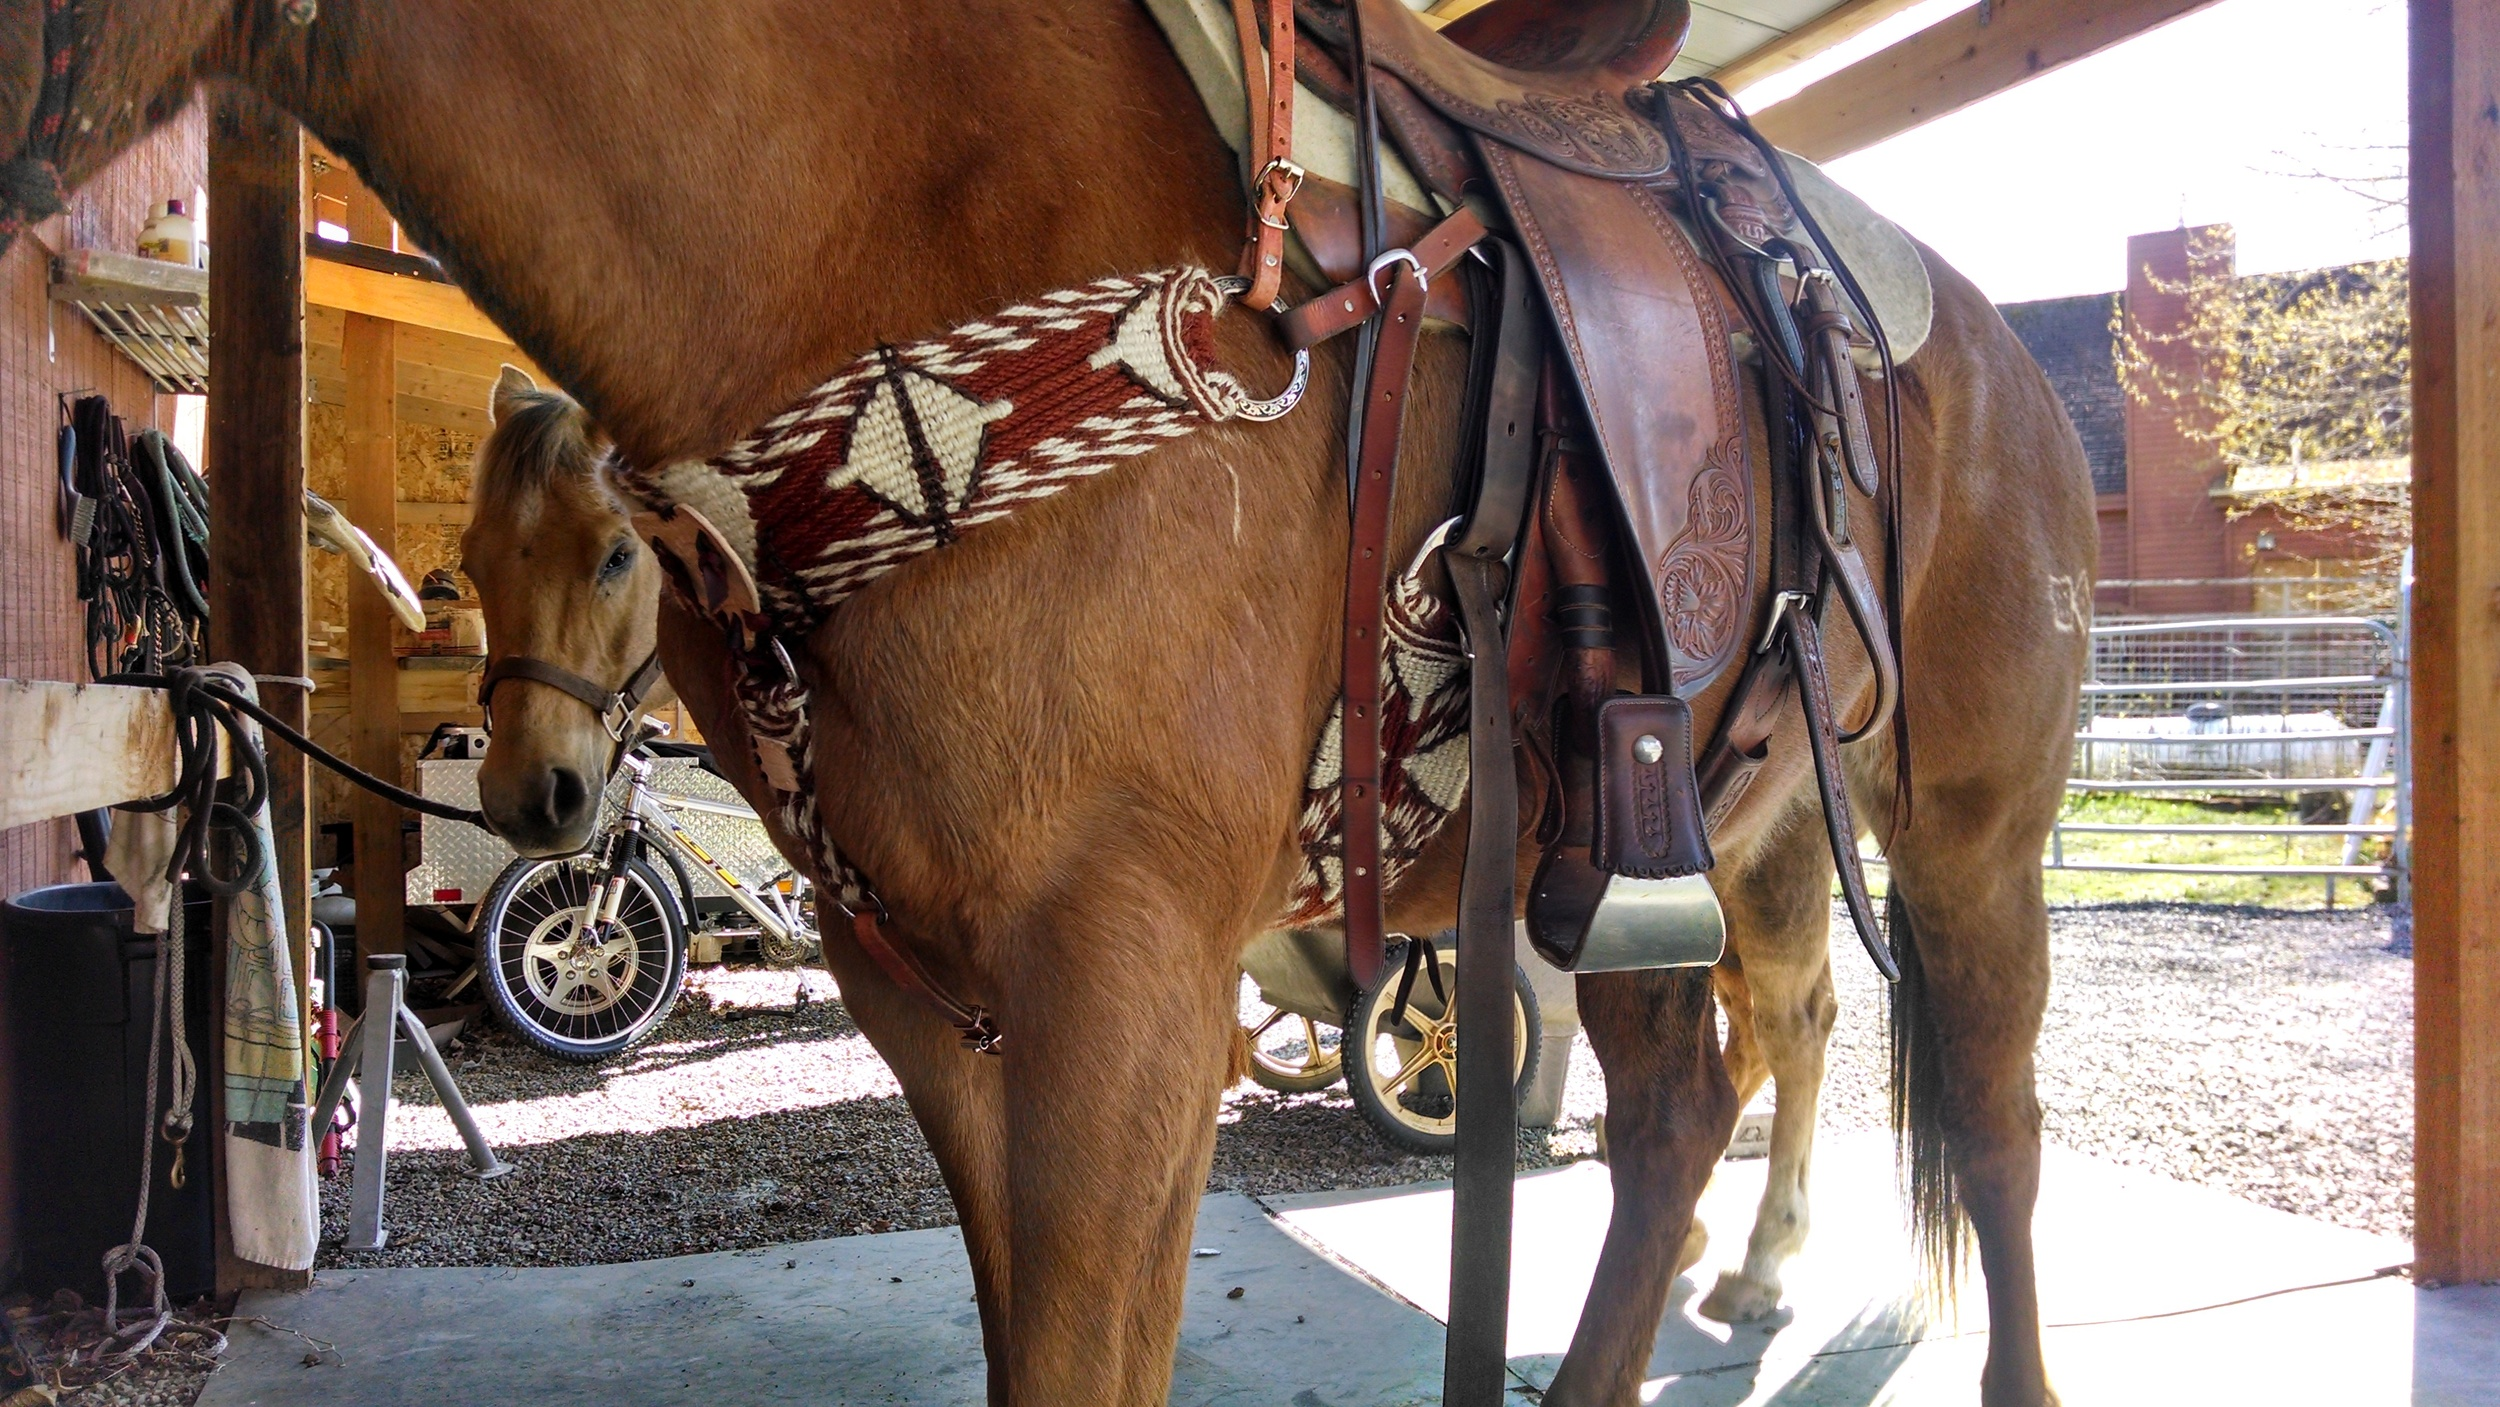 My newest mule from Coyote mule company...Ida...A Pair A Dice bred and raised Molly. Wearing my Carrey Schwartz Wade saddle with a new cinch and pulling style breast collar I favor in the mountains, sorry about the straps in the way.. Shown for sale in the cinch section.